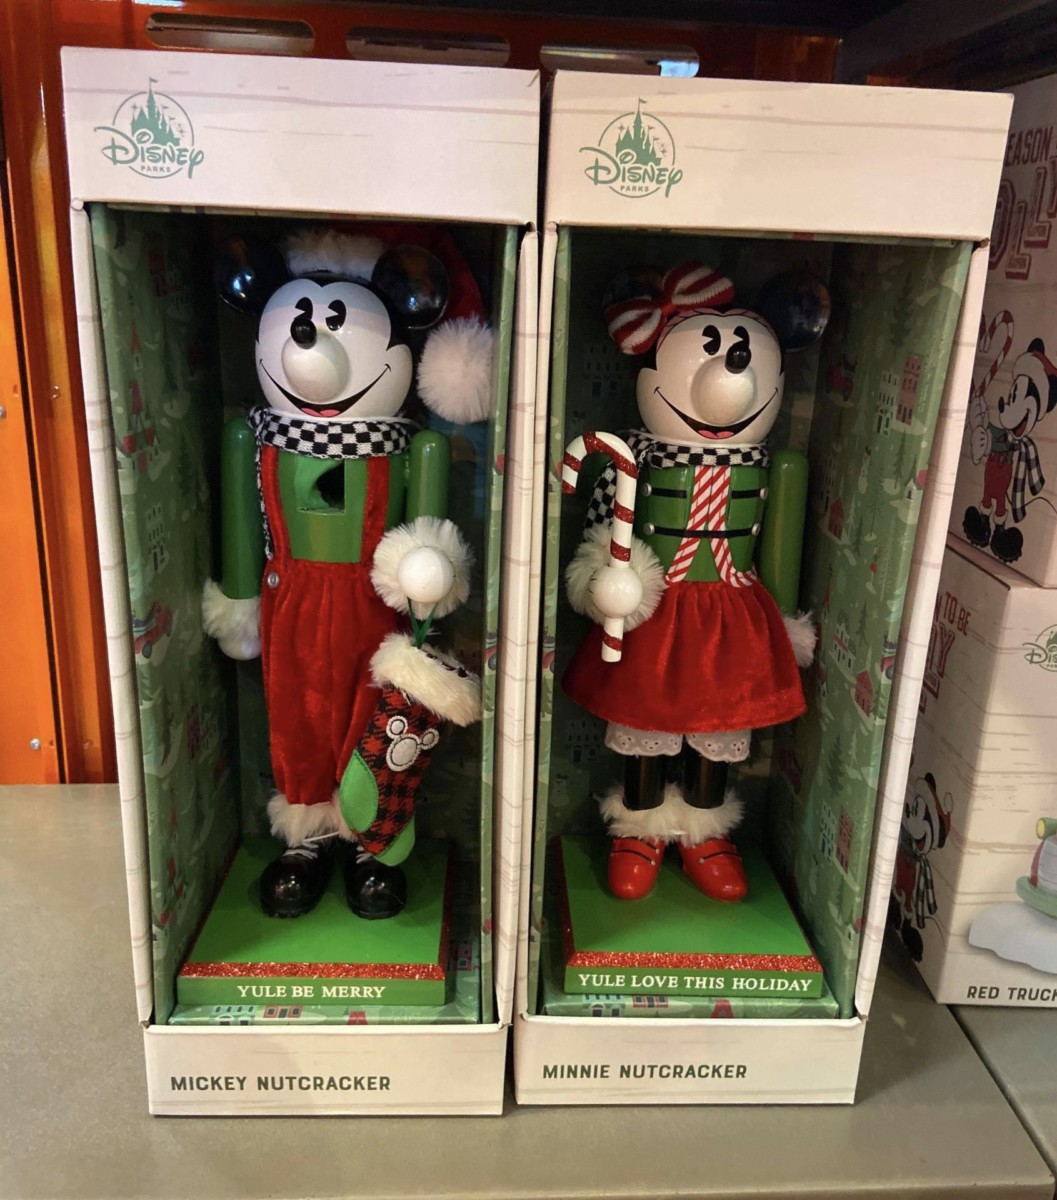 Disney Holiday Decor and More! #disneyholidays 2